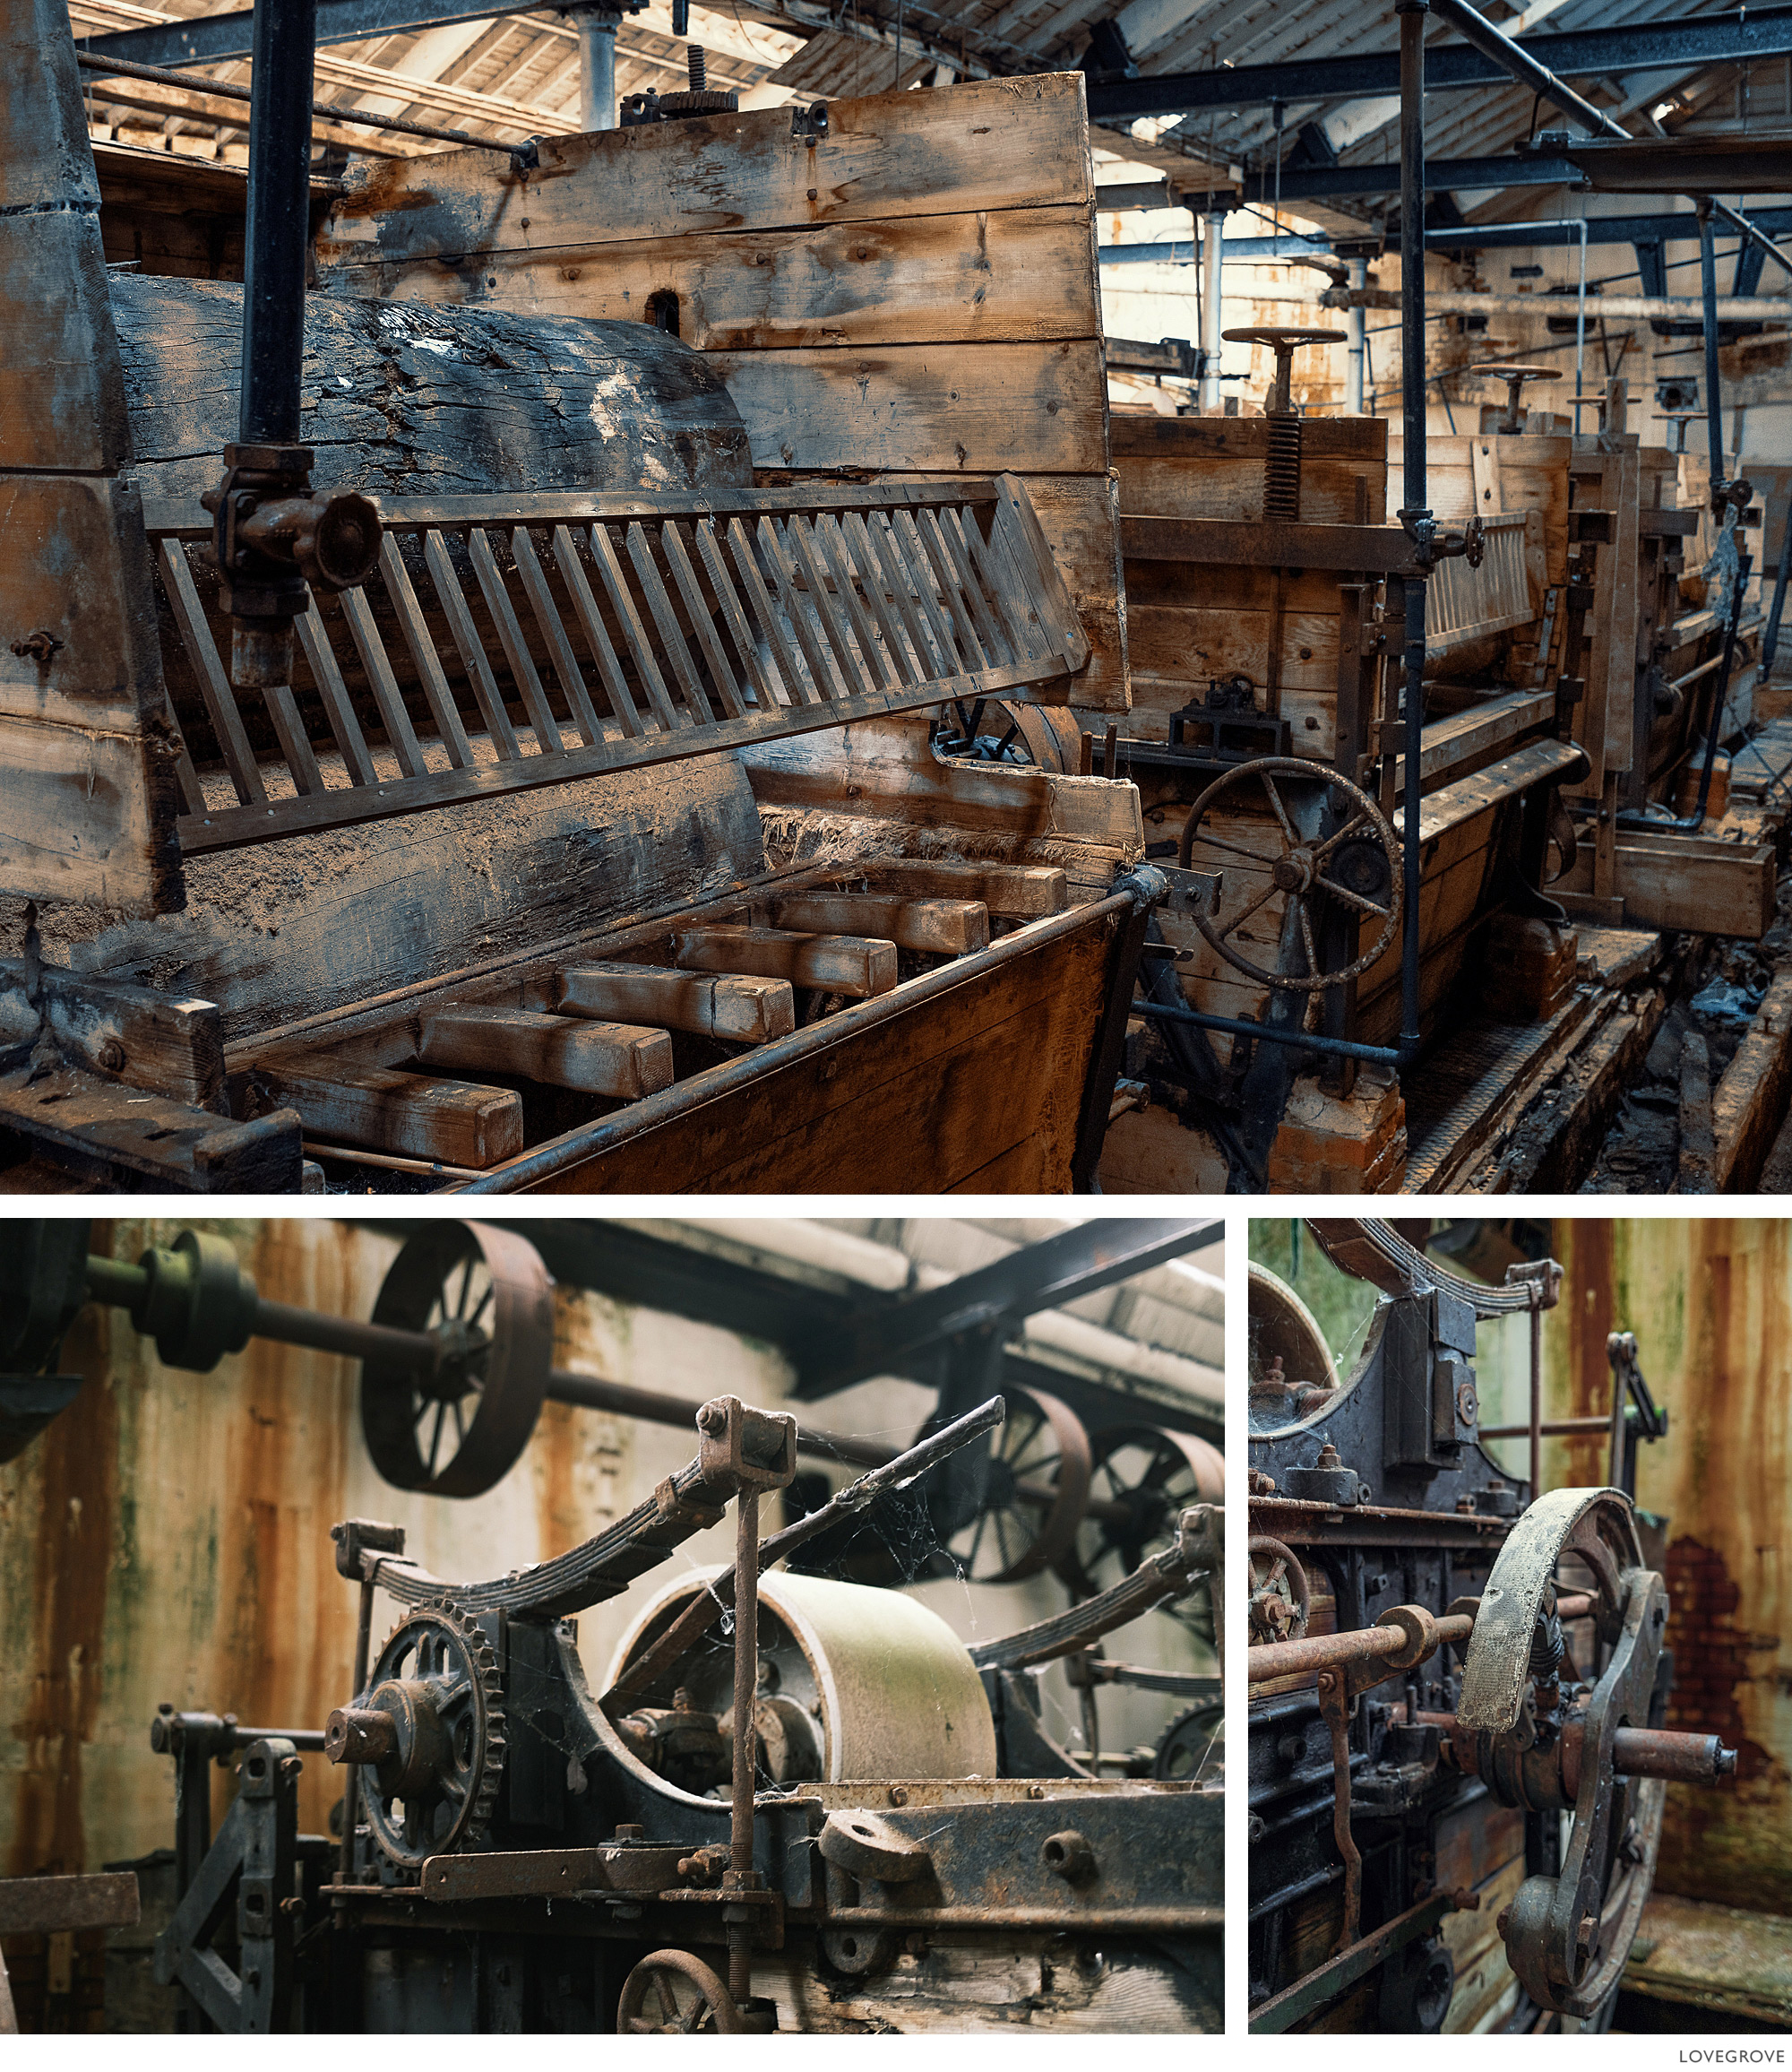 Old machinery in an abondoned textile mill in Tonedale Somerset